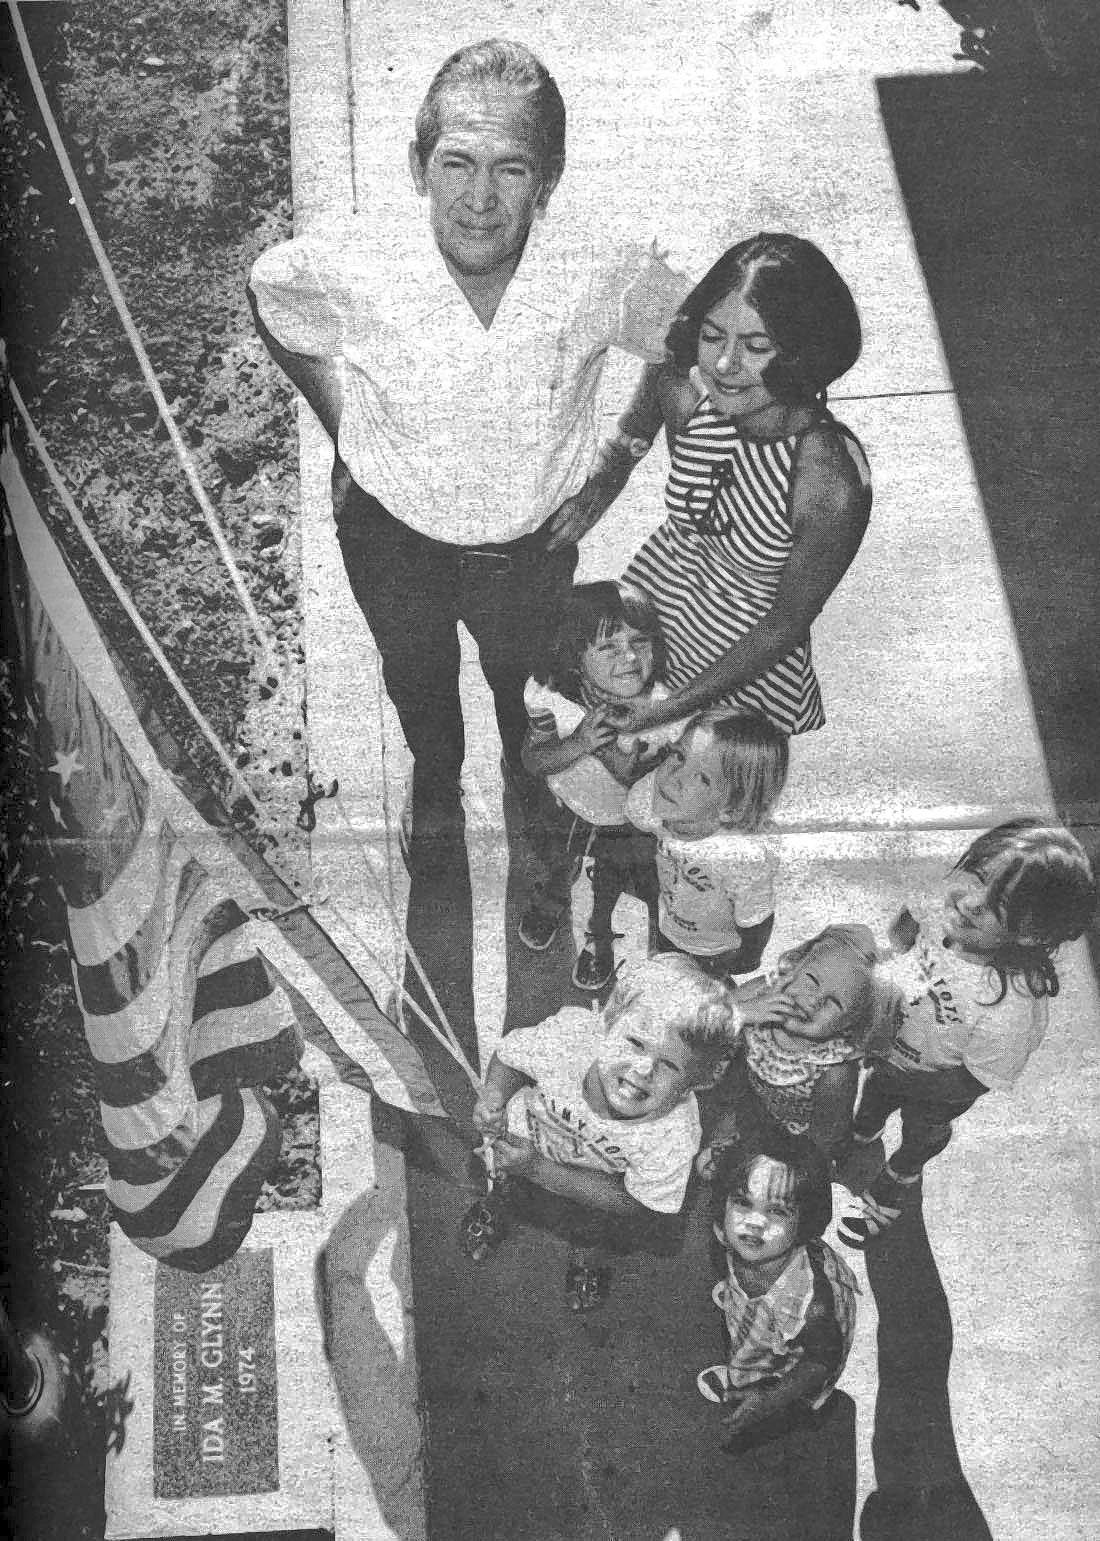 In 1974 the Ida M. Glynn Memorial Fund purchased a new flagpole for the La Cañada Youth House (today the Community Center of La Cañada Flintridge). A brass plate bearing her name is set in marble at the flagpole?s base. Ida Glynn, who with her husband, Ed (standing at the top of the photo) operated the La Cañada Variety Store, was beloved in the community. Her children, grandchildren and now great-grandchildren have taken part in programs at the center over the past decades. Shown with Ed Glynn admiring the flagpole are members of the Tiny Tots preschool program and their teacher, Pat Yunker.